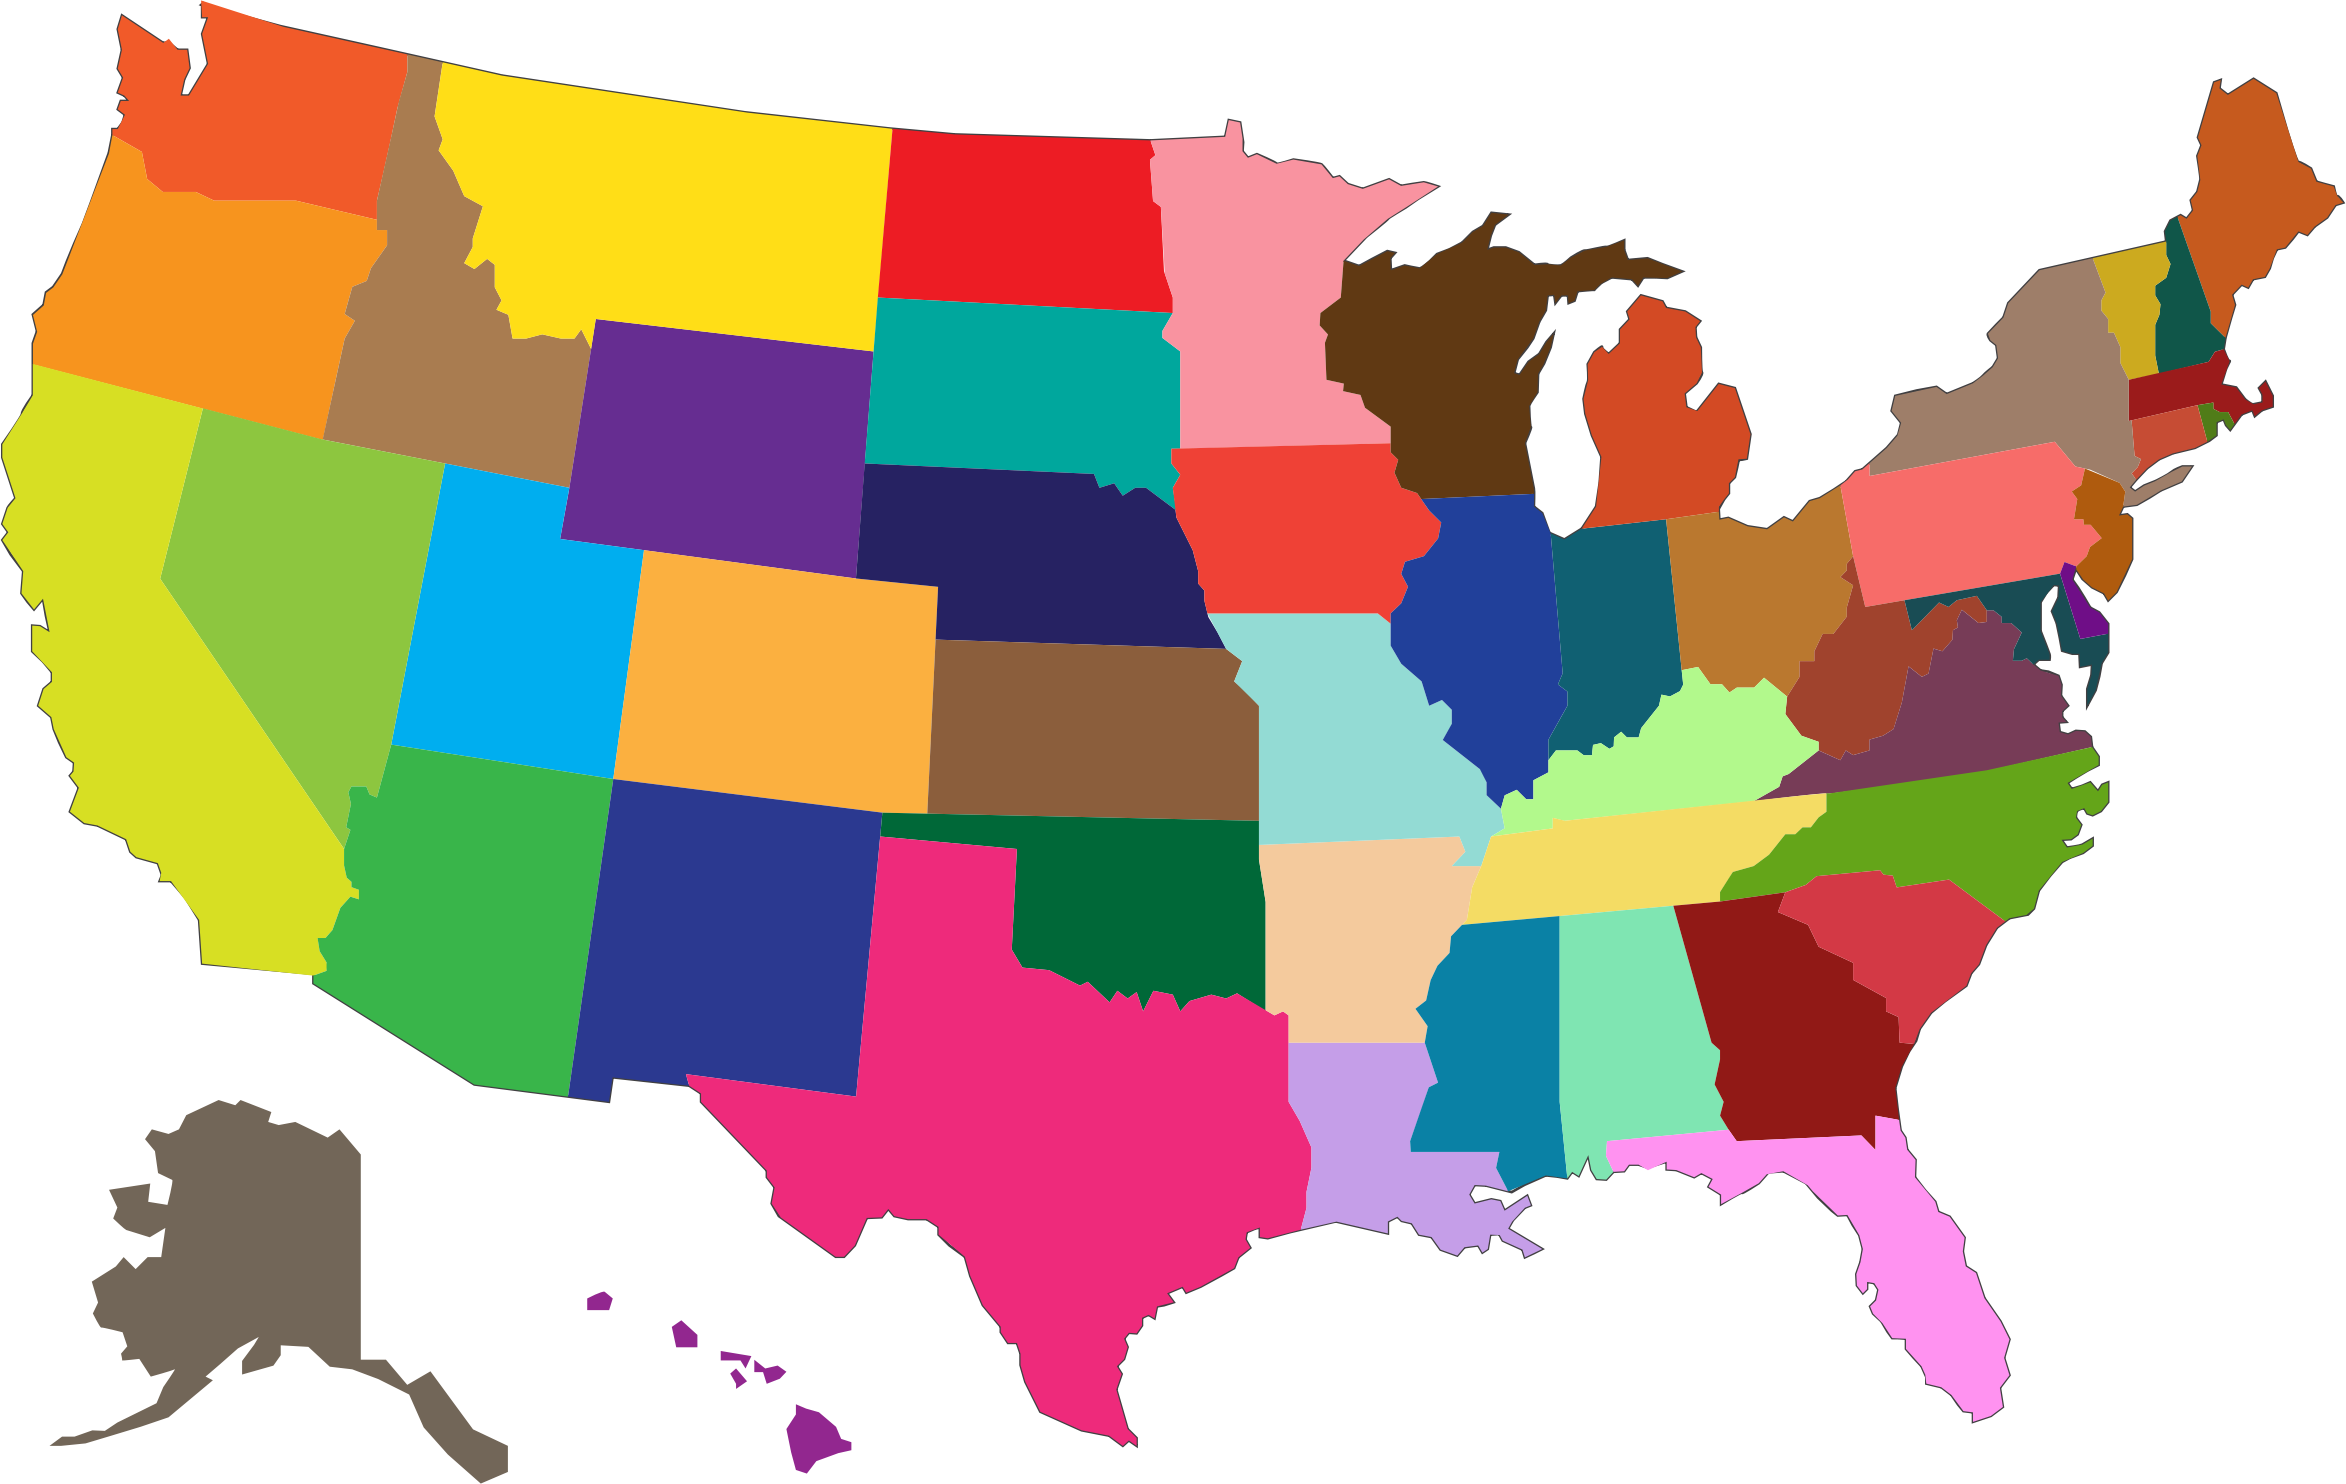 Clipart MultiColored United States Map - States map of the united states